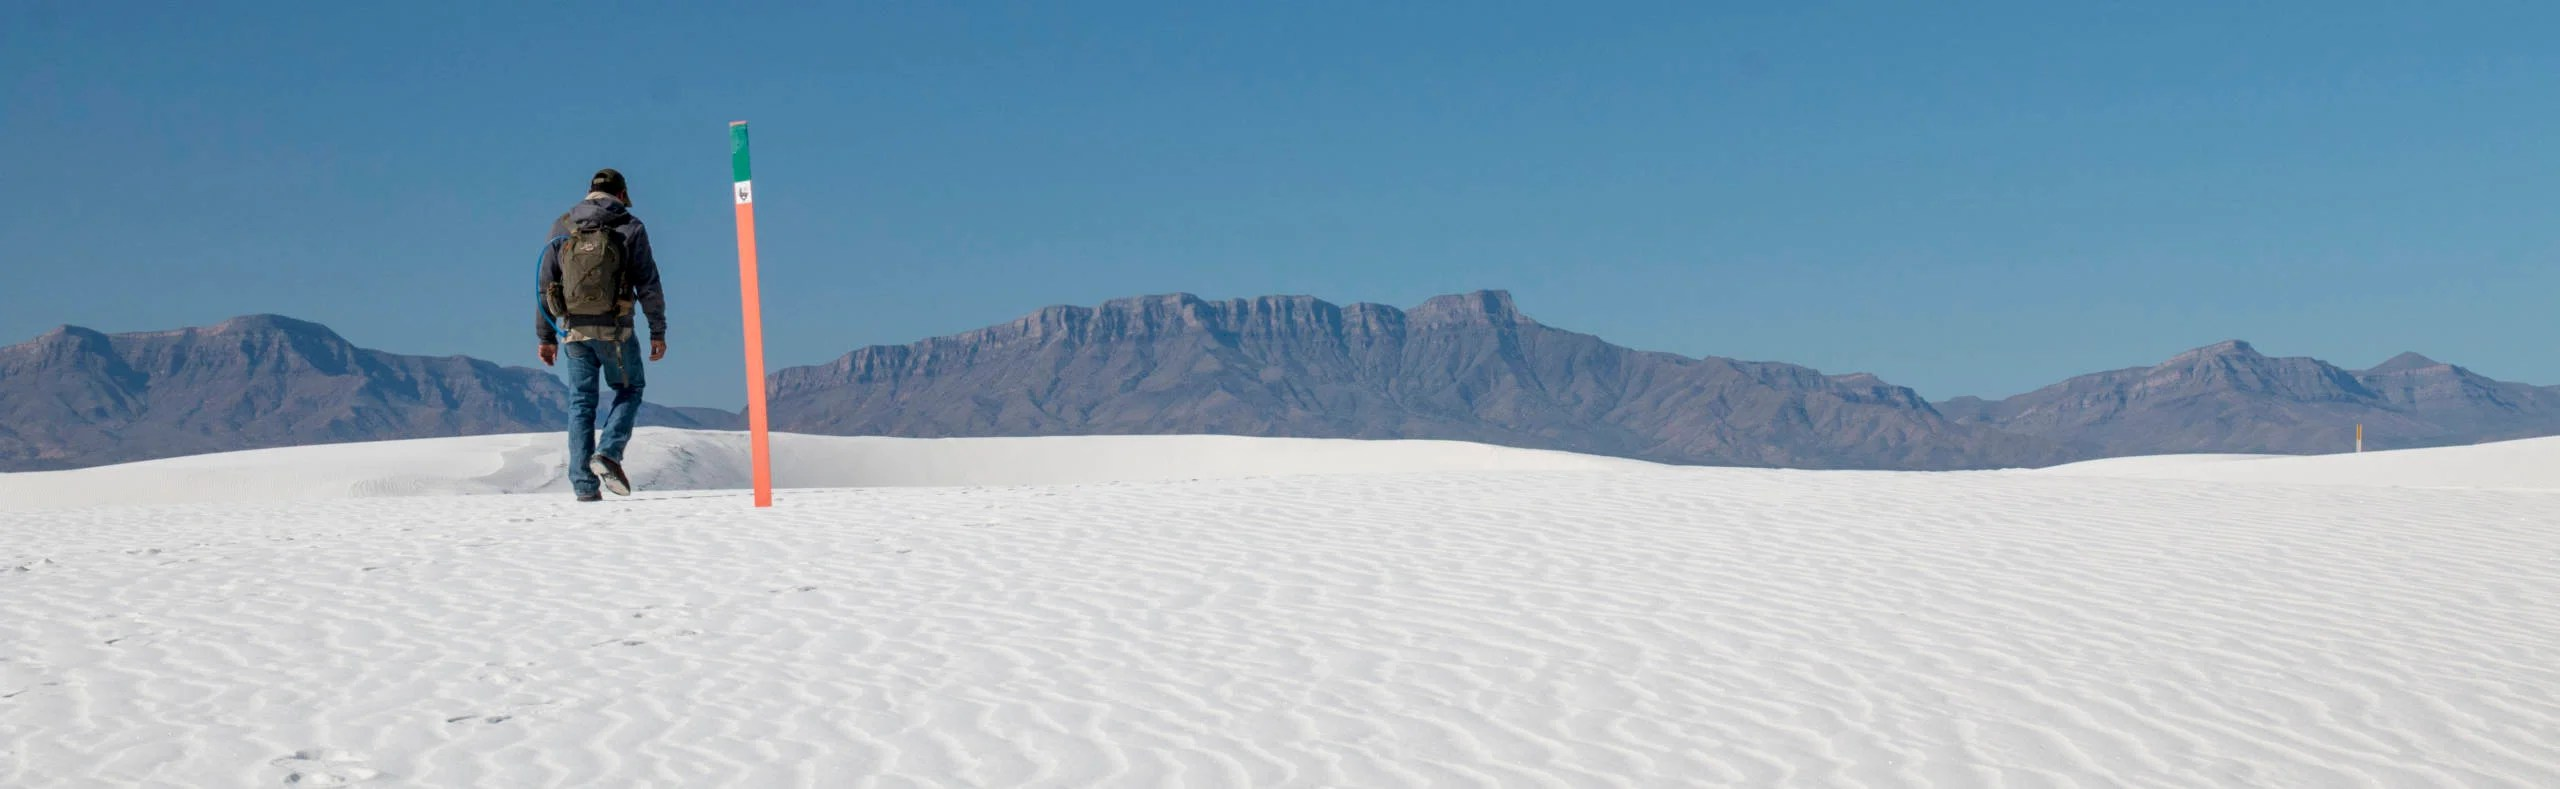 There's a new national park: White Sands in New Mexico